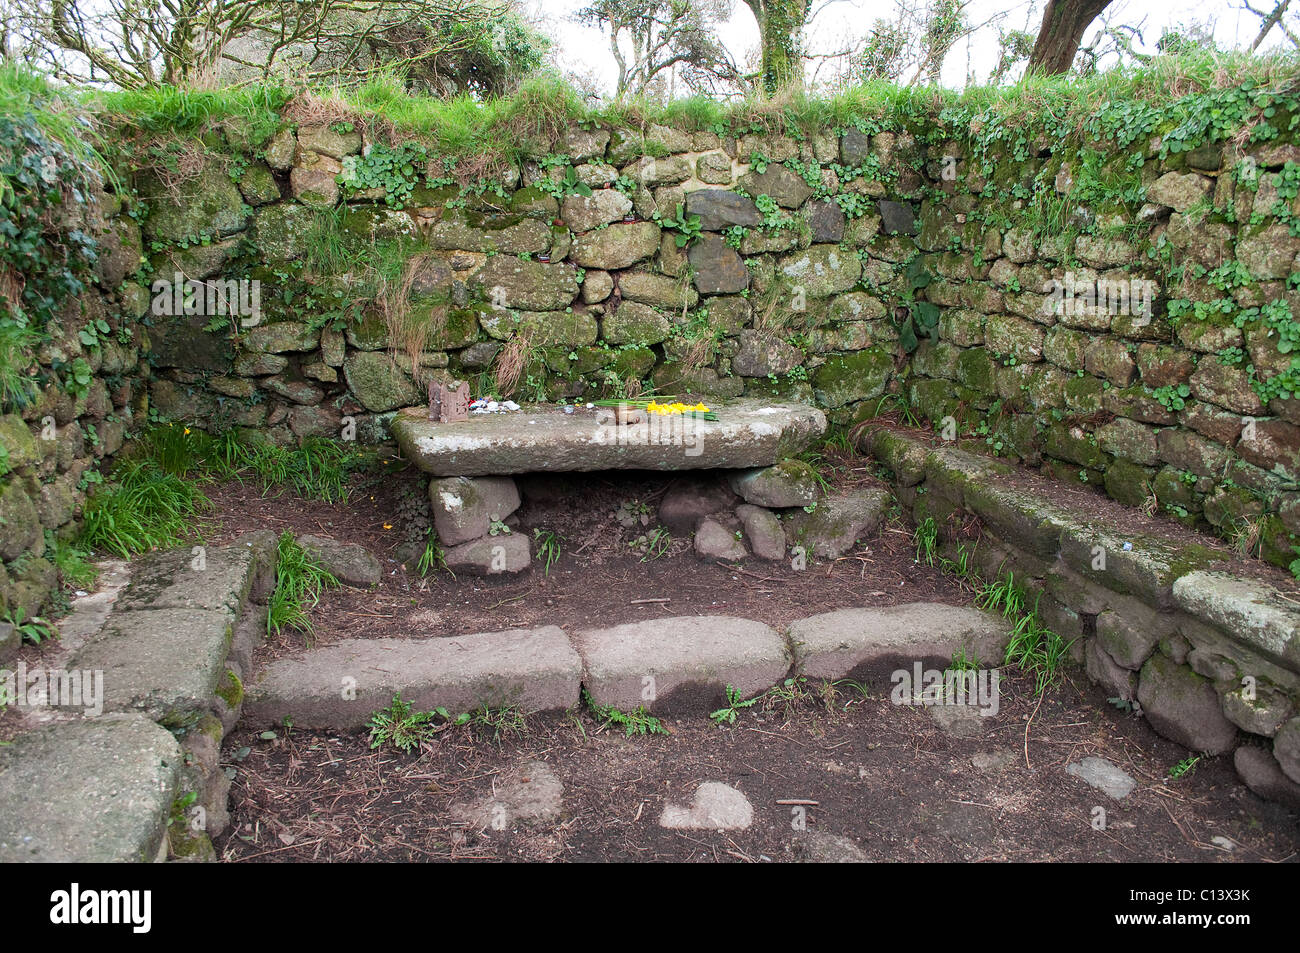 The alter in the ancient baptistry of boswarthen chapel near madron in cornwall, uk - Stock Image